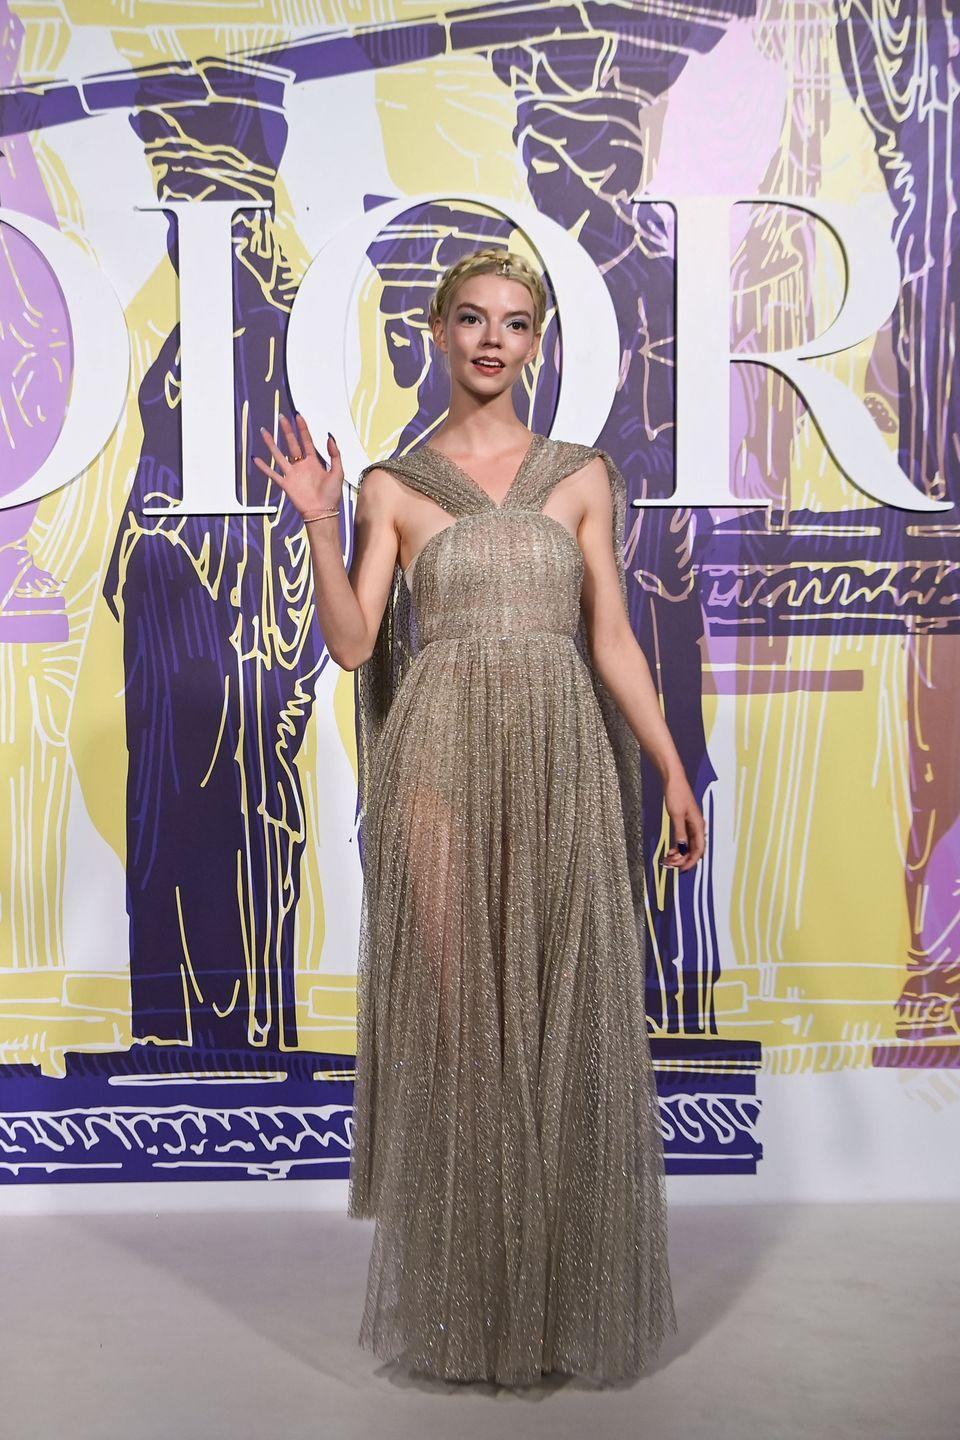 <p>The actor attended the Dior Cruise 2022 show in Athens wearing a shimmering gold Grecian-style gown by Dior.</p>